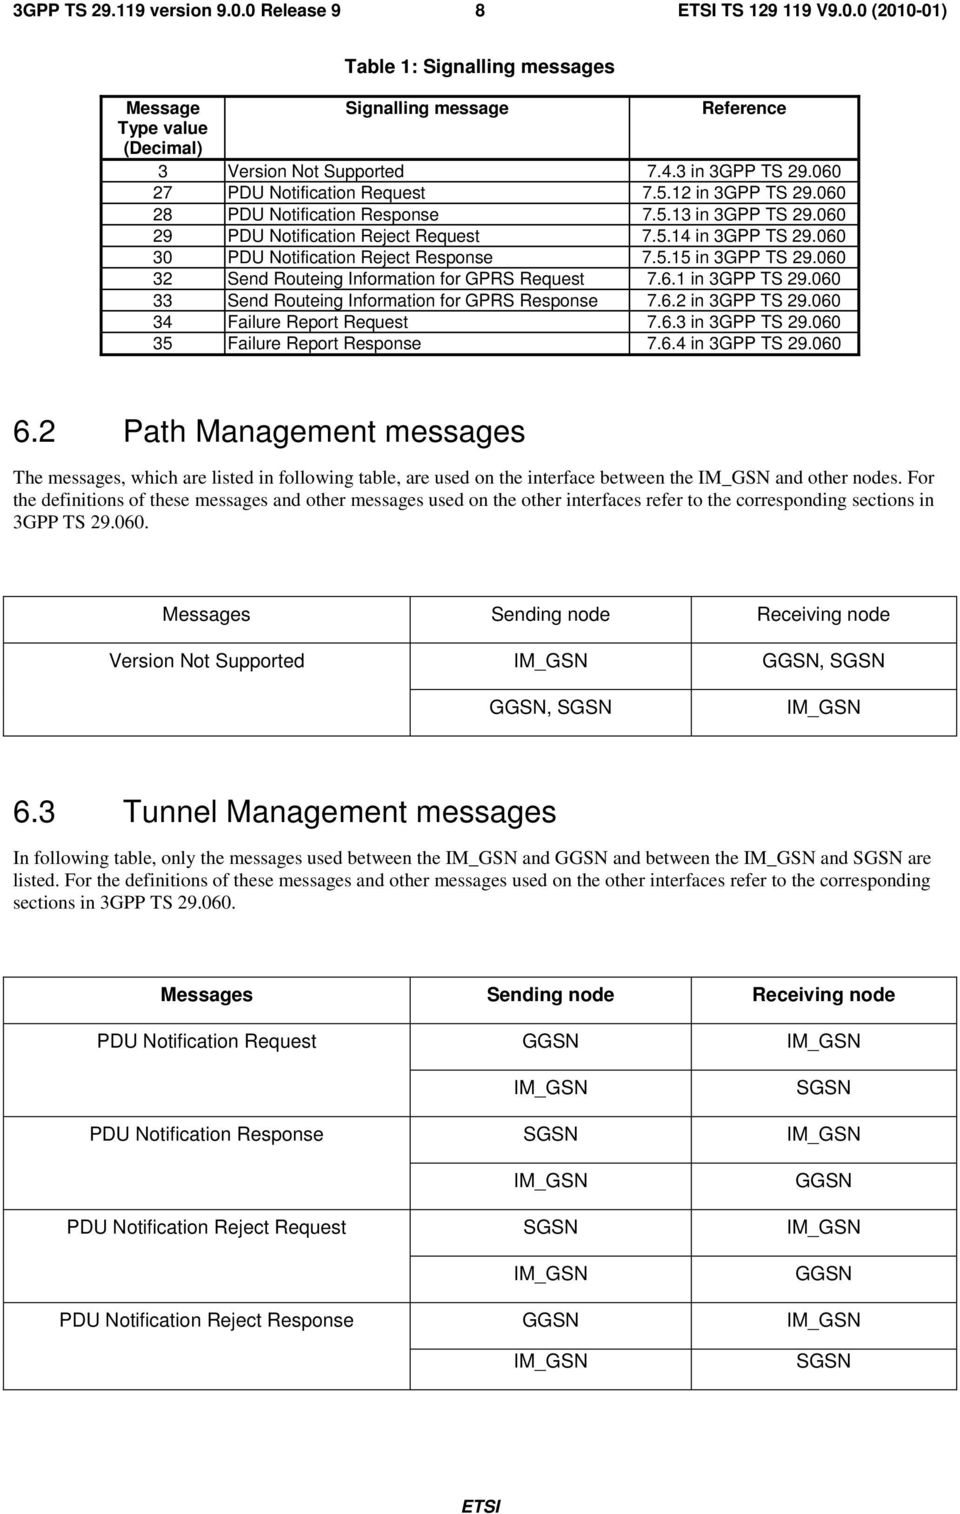 060 32 Send Routeing Information for GPRS Request 7.6.1 in 3GPP TS 29.060 33 Send Routeing Information for GPRS Response 7.6.2 in 3GPP TS 29.060 34 Failure Report Request 7.6.3 in 3GPP TS 29.